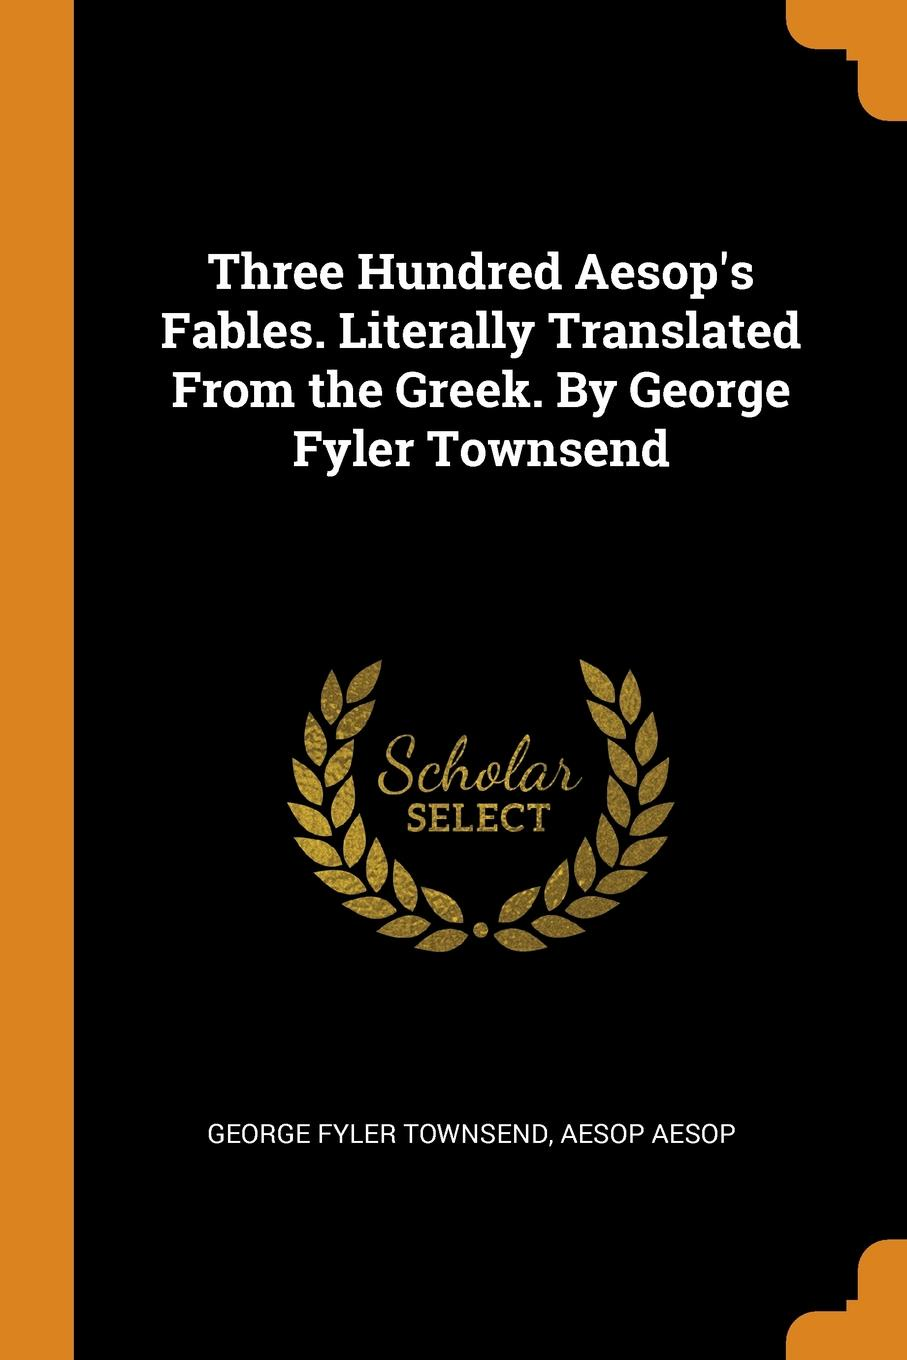 George Fyler Townsend, Aesop Aesop Three Hundred Aesop.s Fables. Literally Translated From the Greek. By George Fyler Townsend